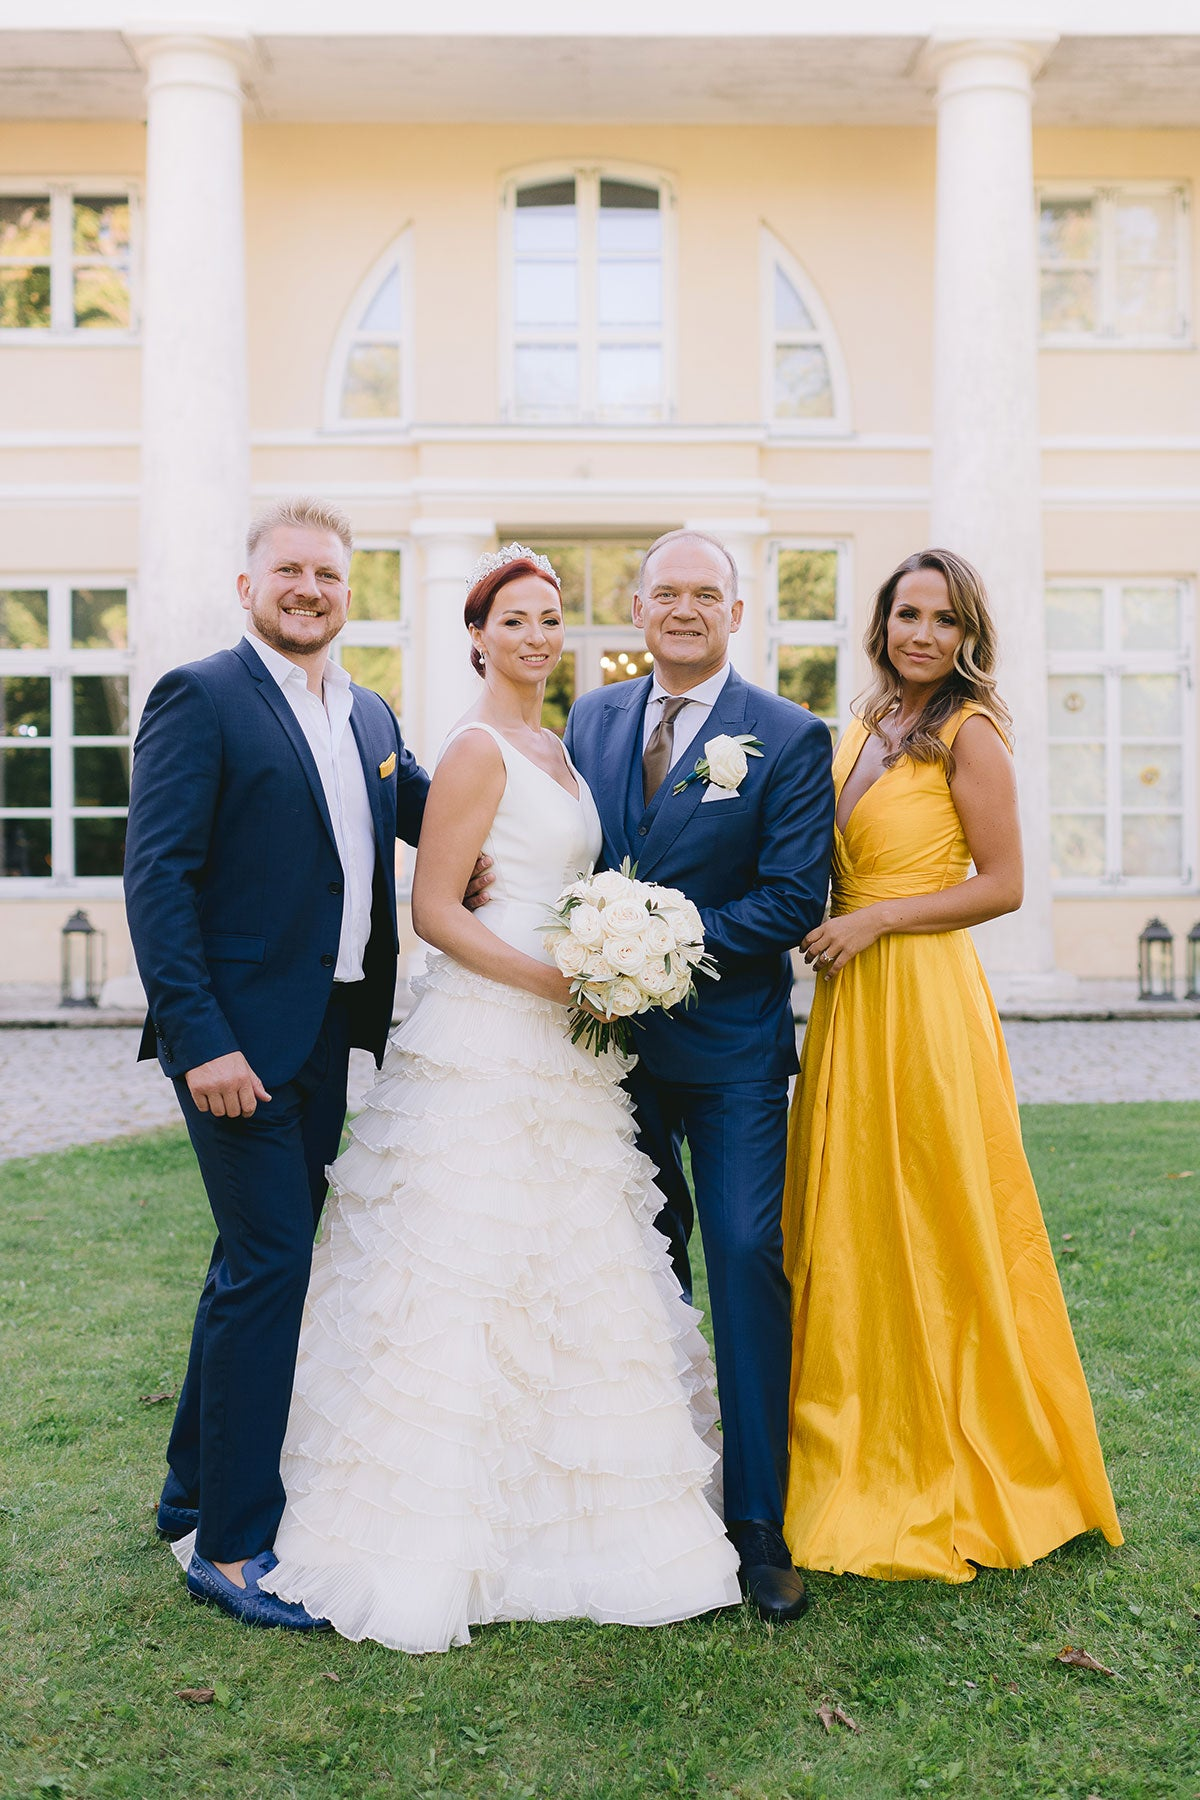 Kuusk Wedding Kõue manor